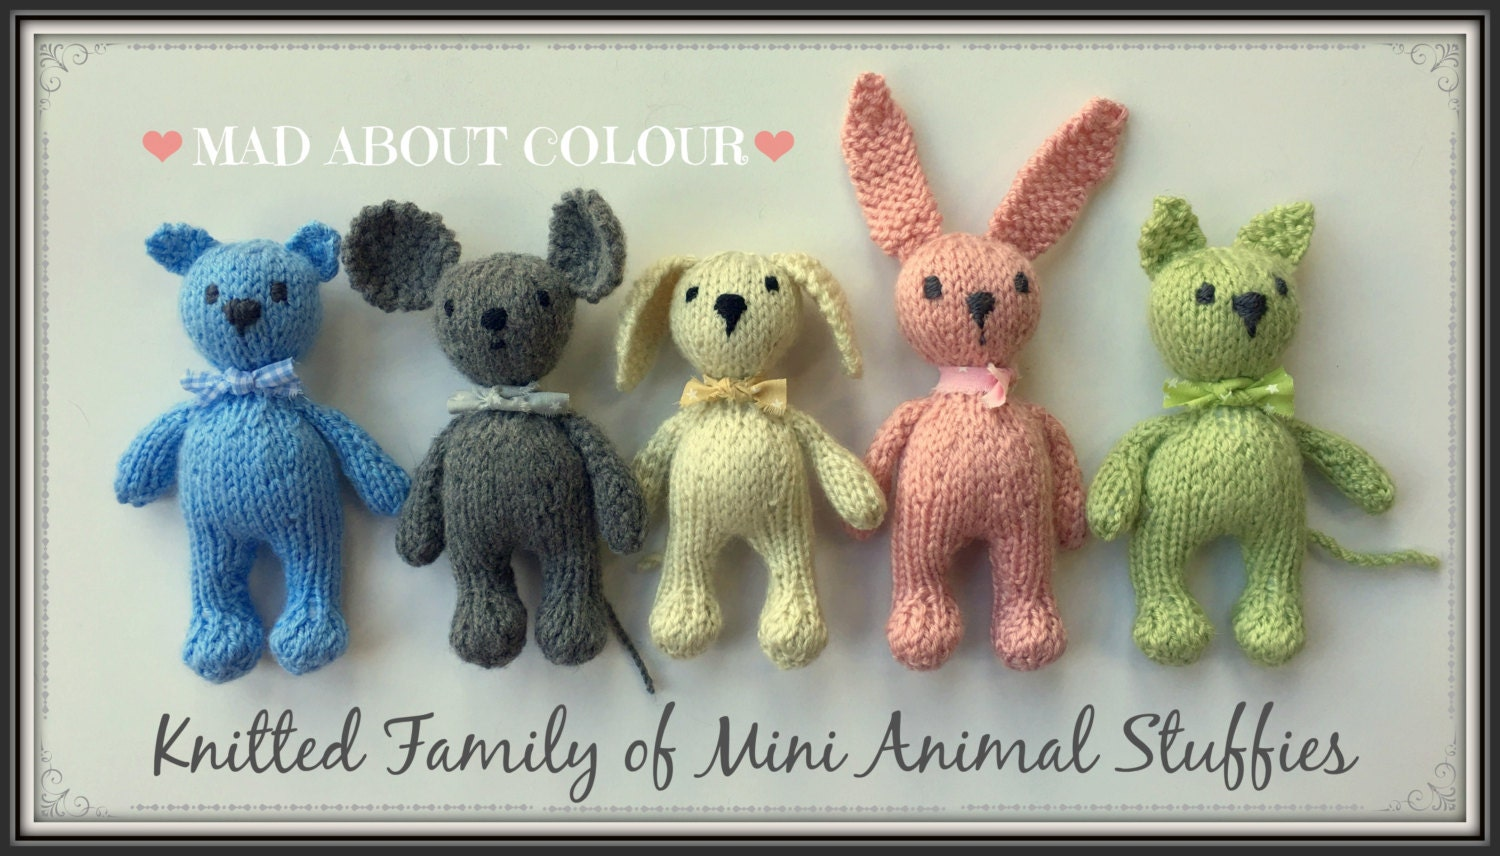 Mini Animal Stuffies KNiTTING PaTTERN Small Teddy Bear Bunny